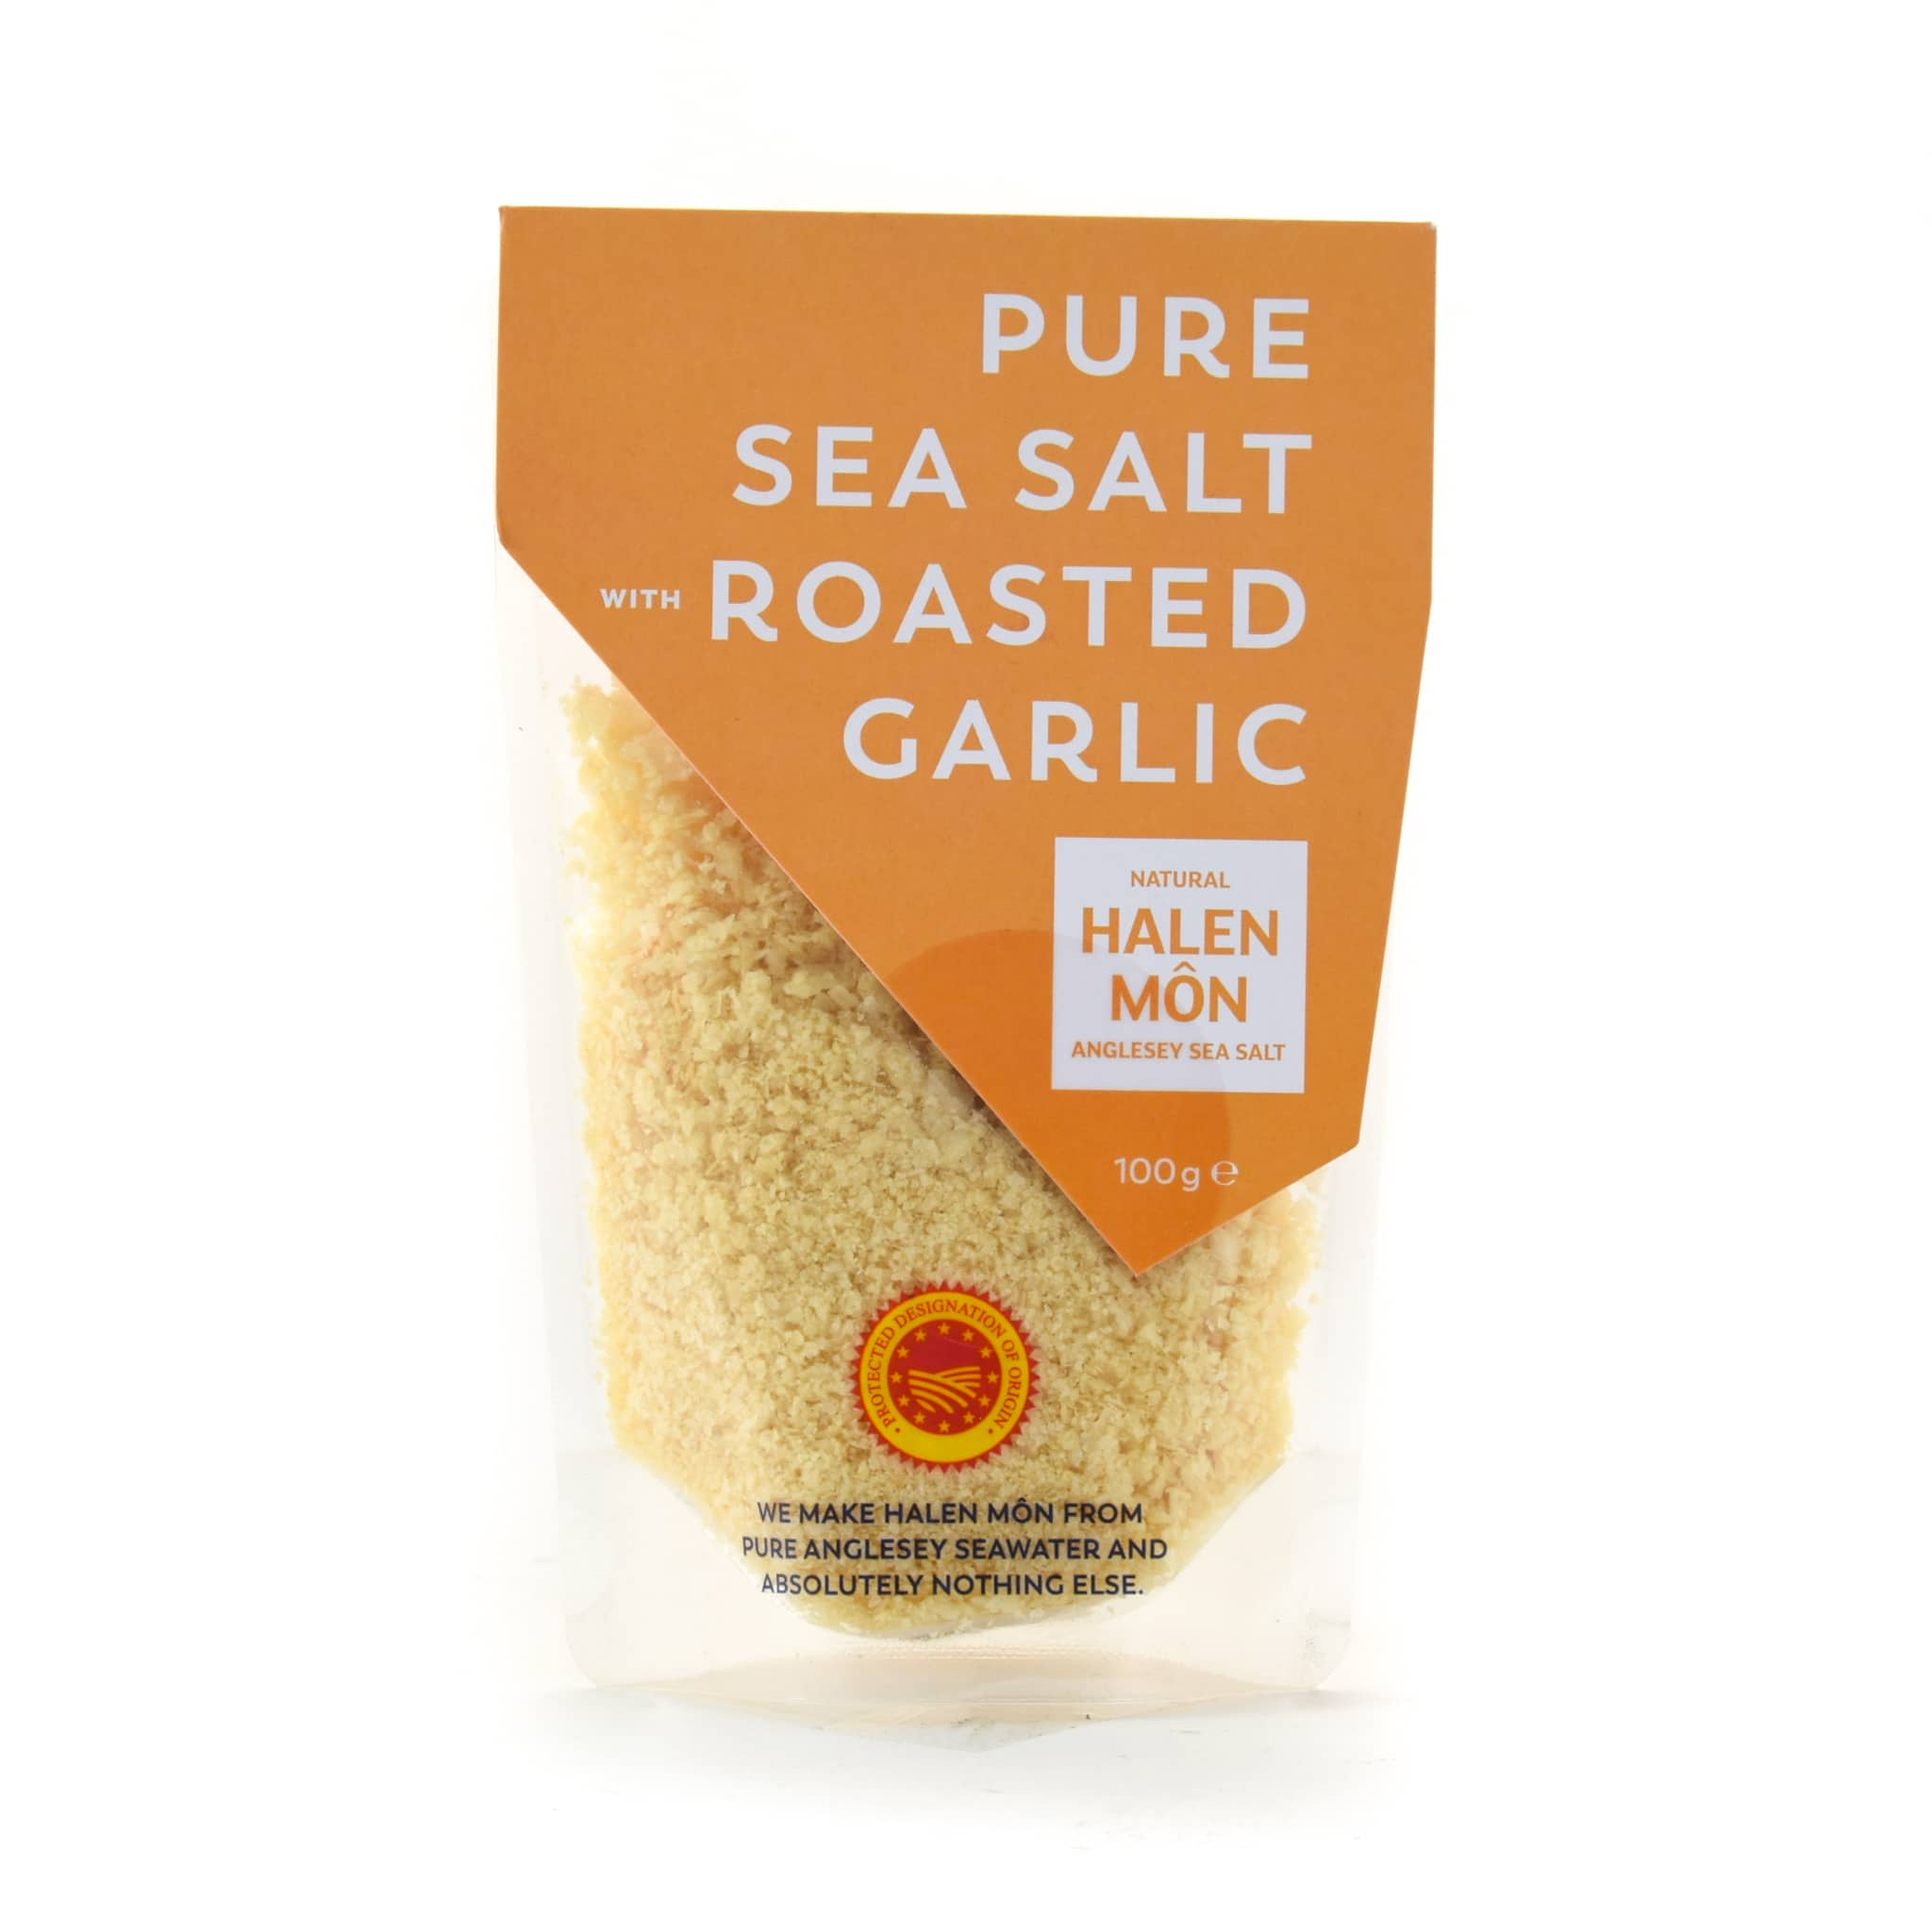 Halen Môn Pure Sea Salt with Roasted Garlic 100g